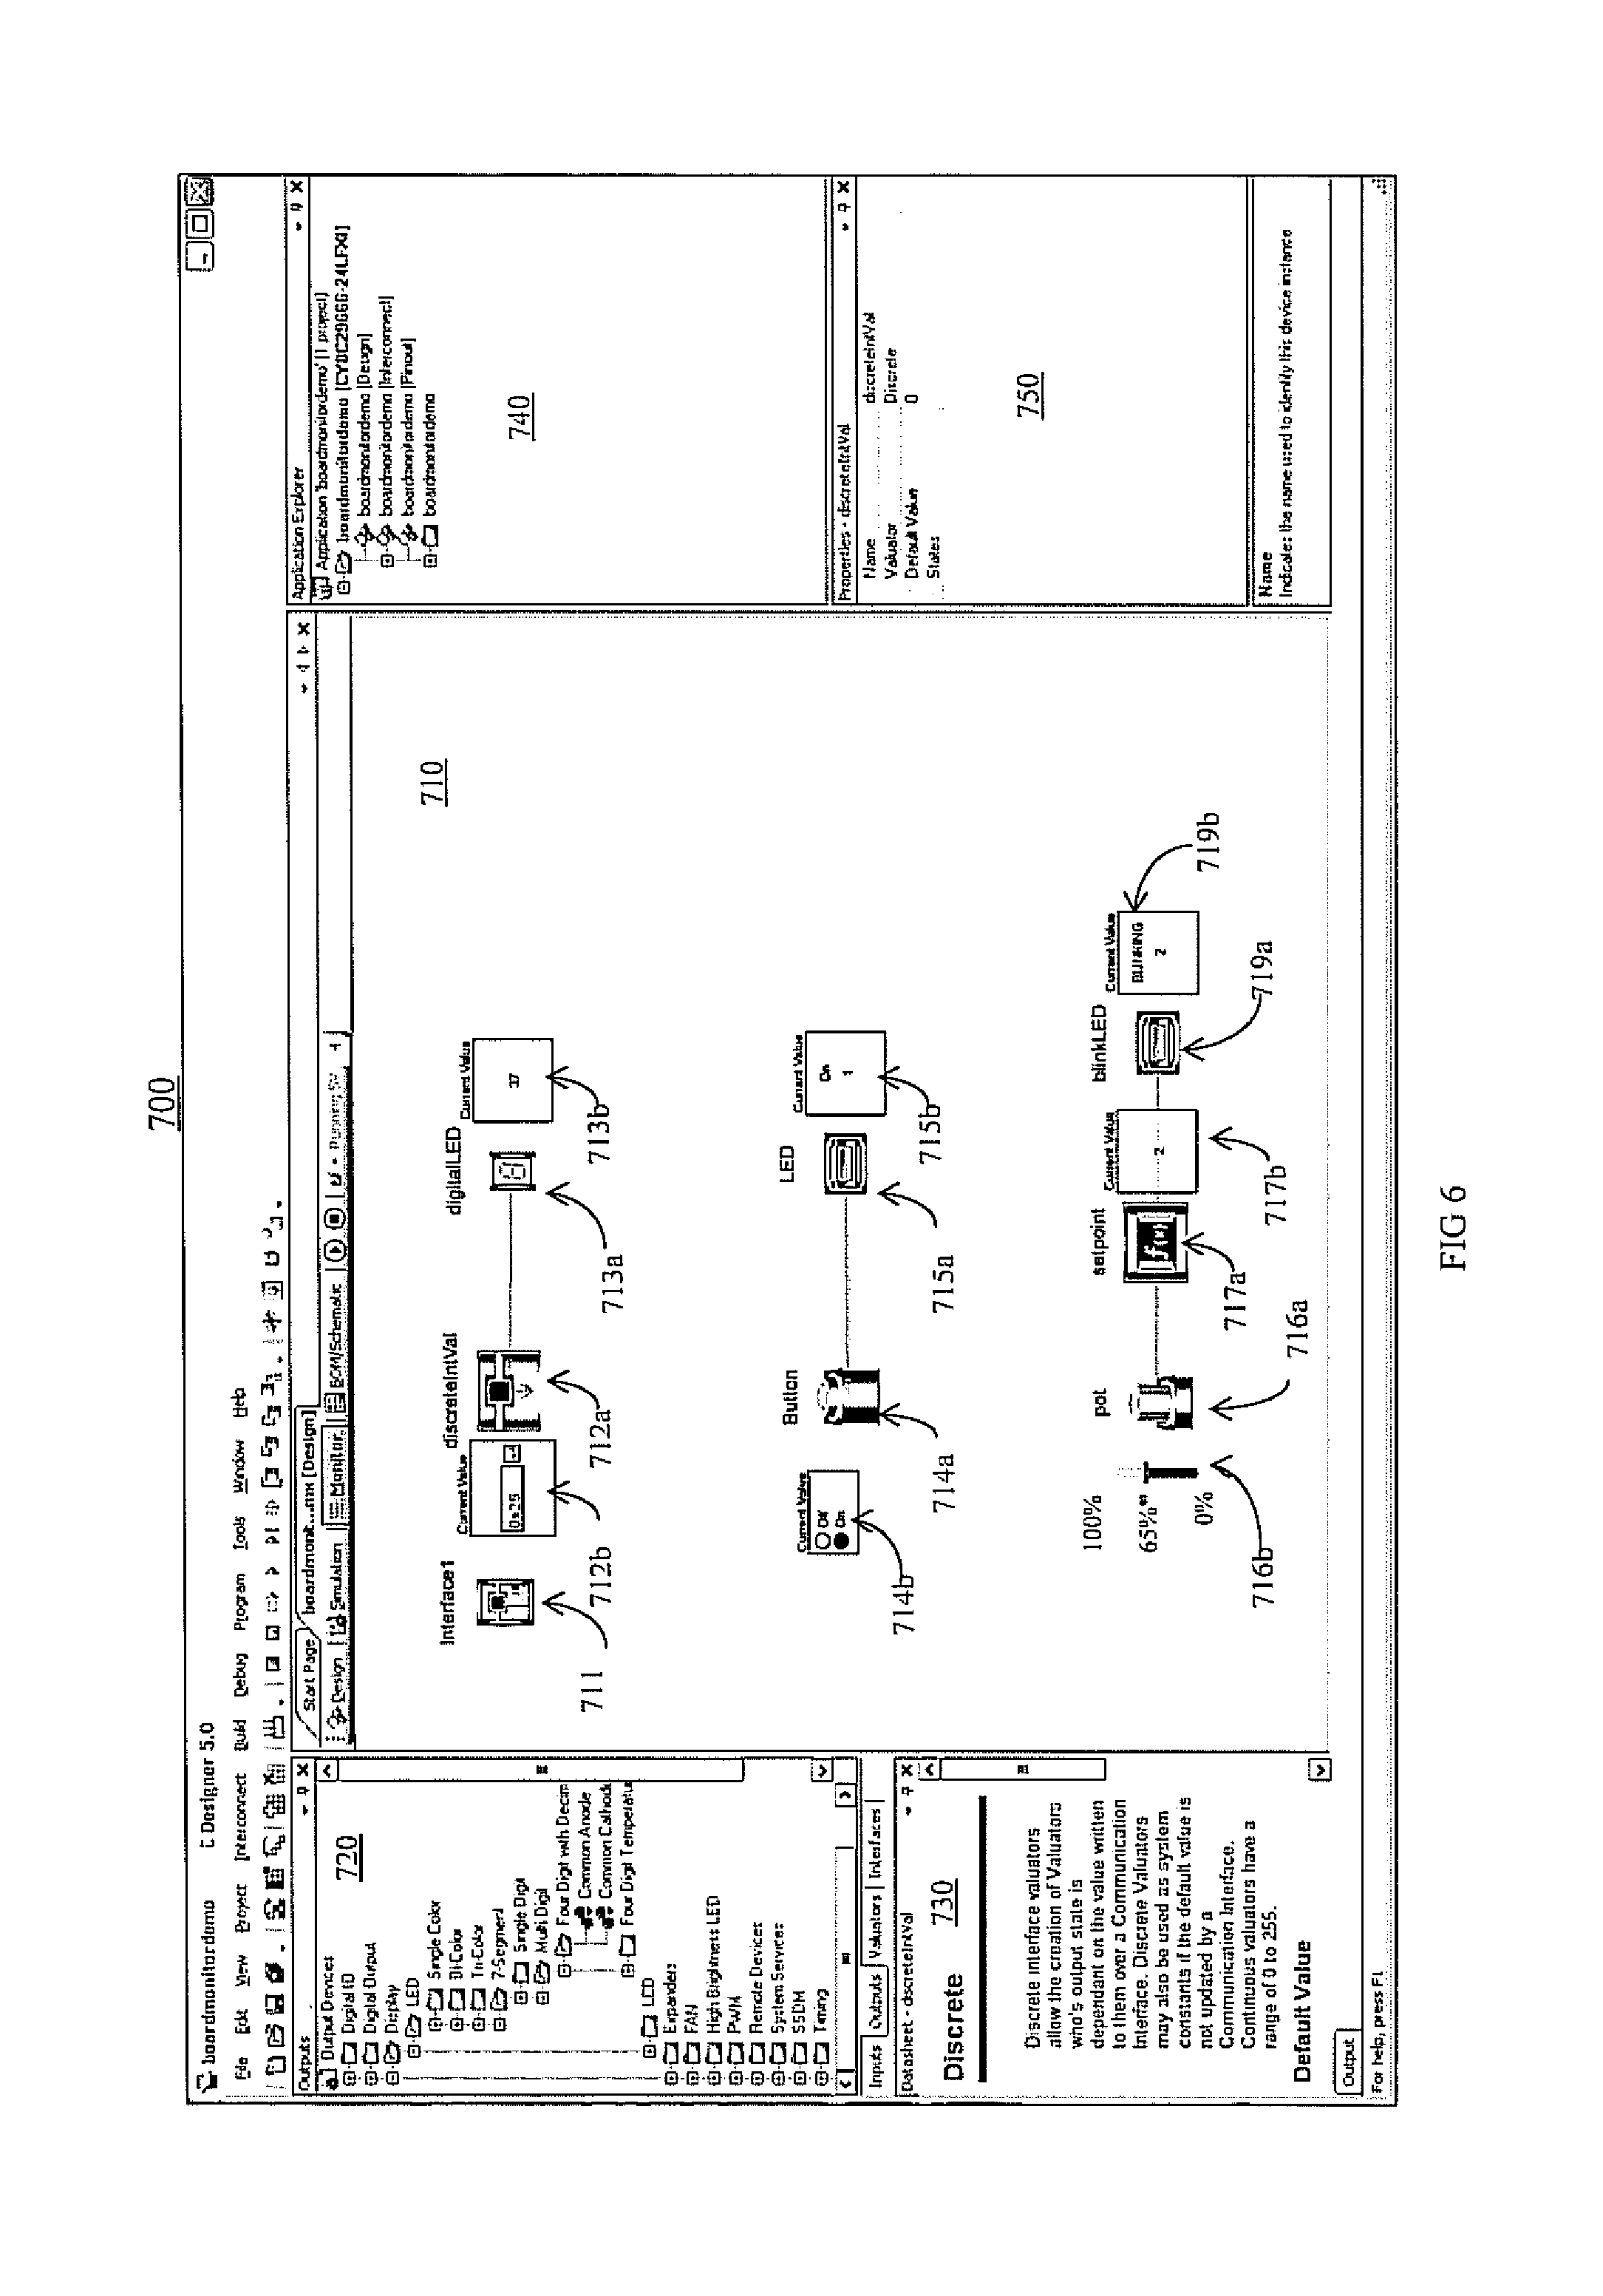 Patent Us 9720805 B1 Pumped Tunneldiode Transistor Logic Gate Circuit Diagram 0 Petitions